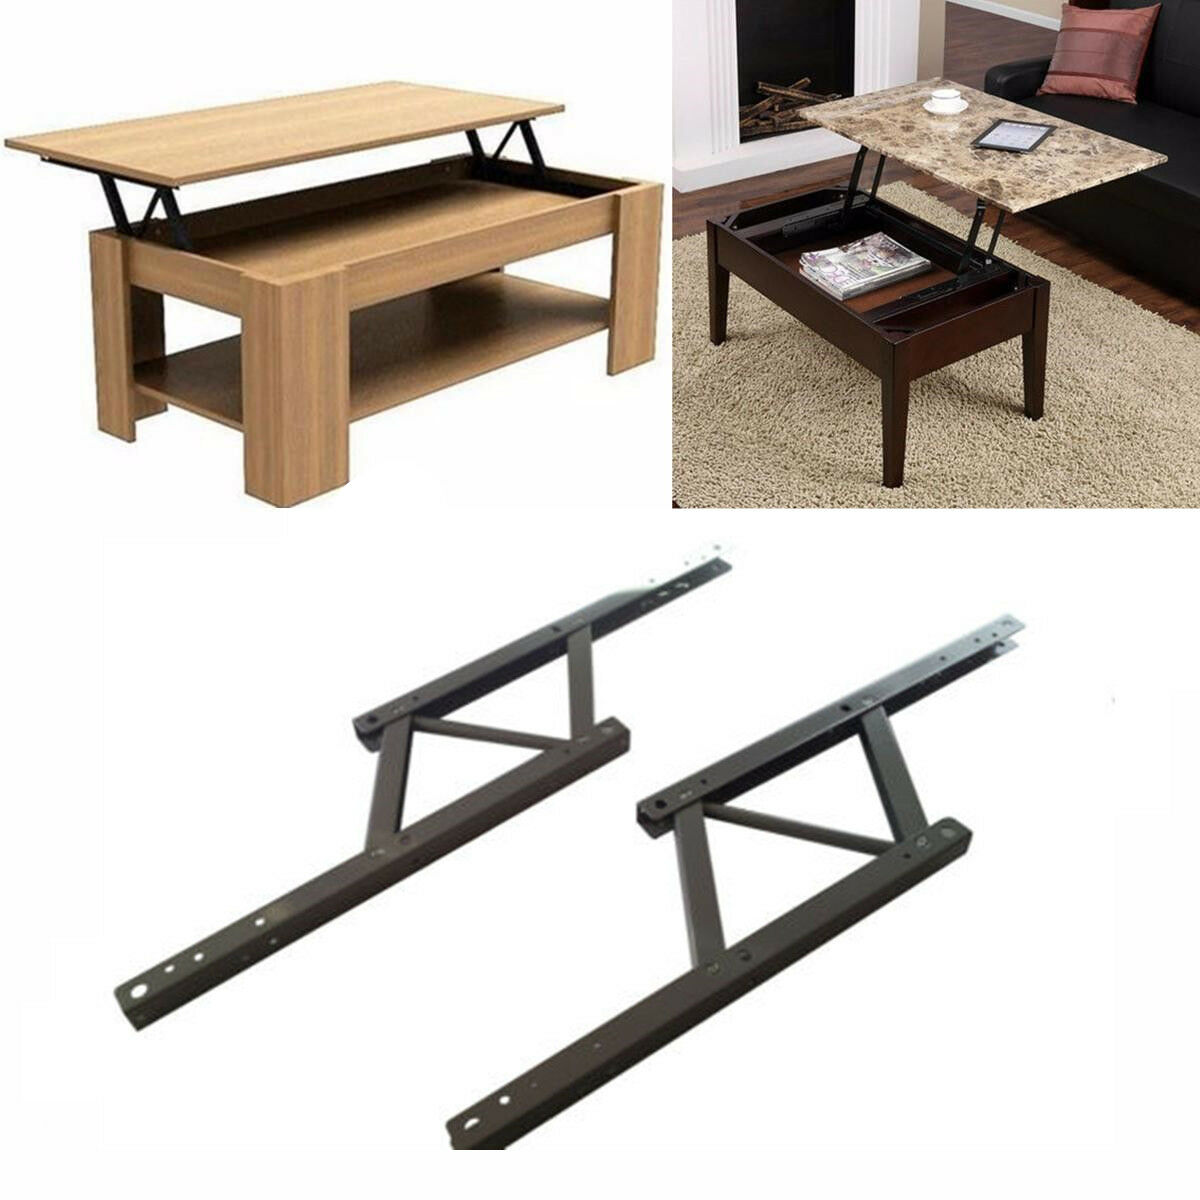 Iron Lift Top Coffee Table Mechanism Diy Hardware Up Furniture Hinge Spring 1 Of 5only 5 Available See More